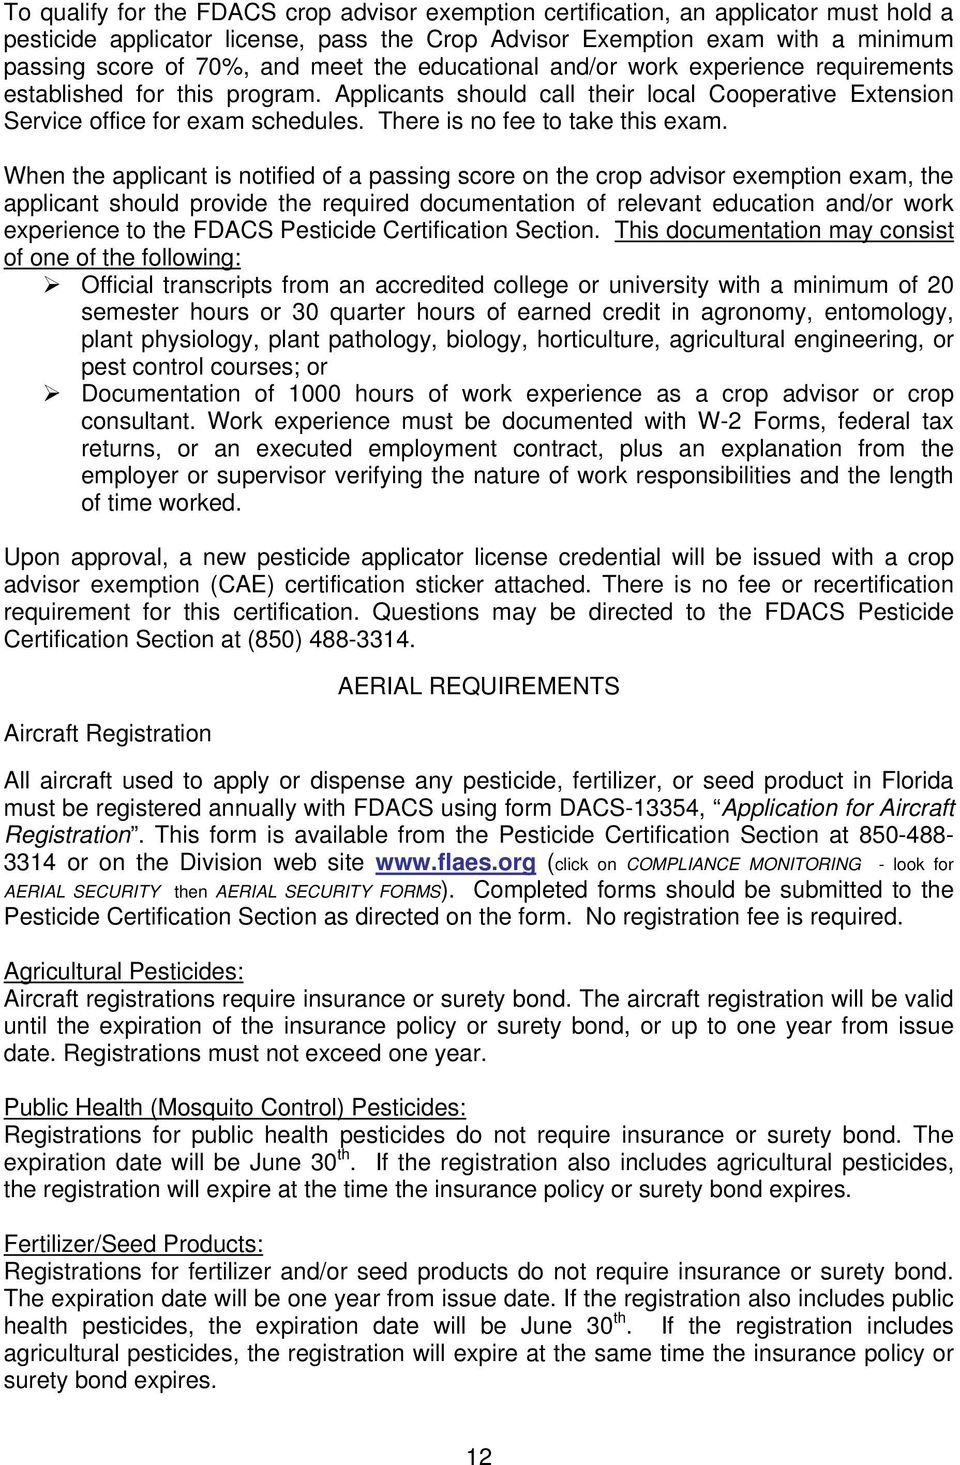 PESTICIDE APPLICATOR CERTIFICATION AND LICENSING IN FLORIDA